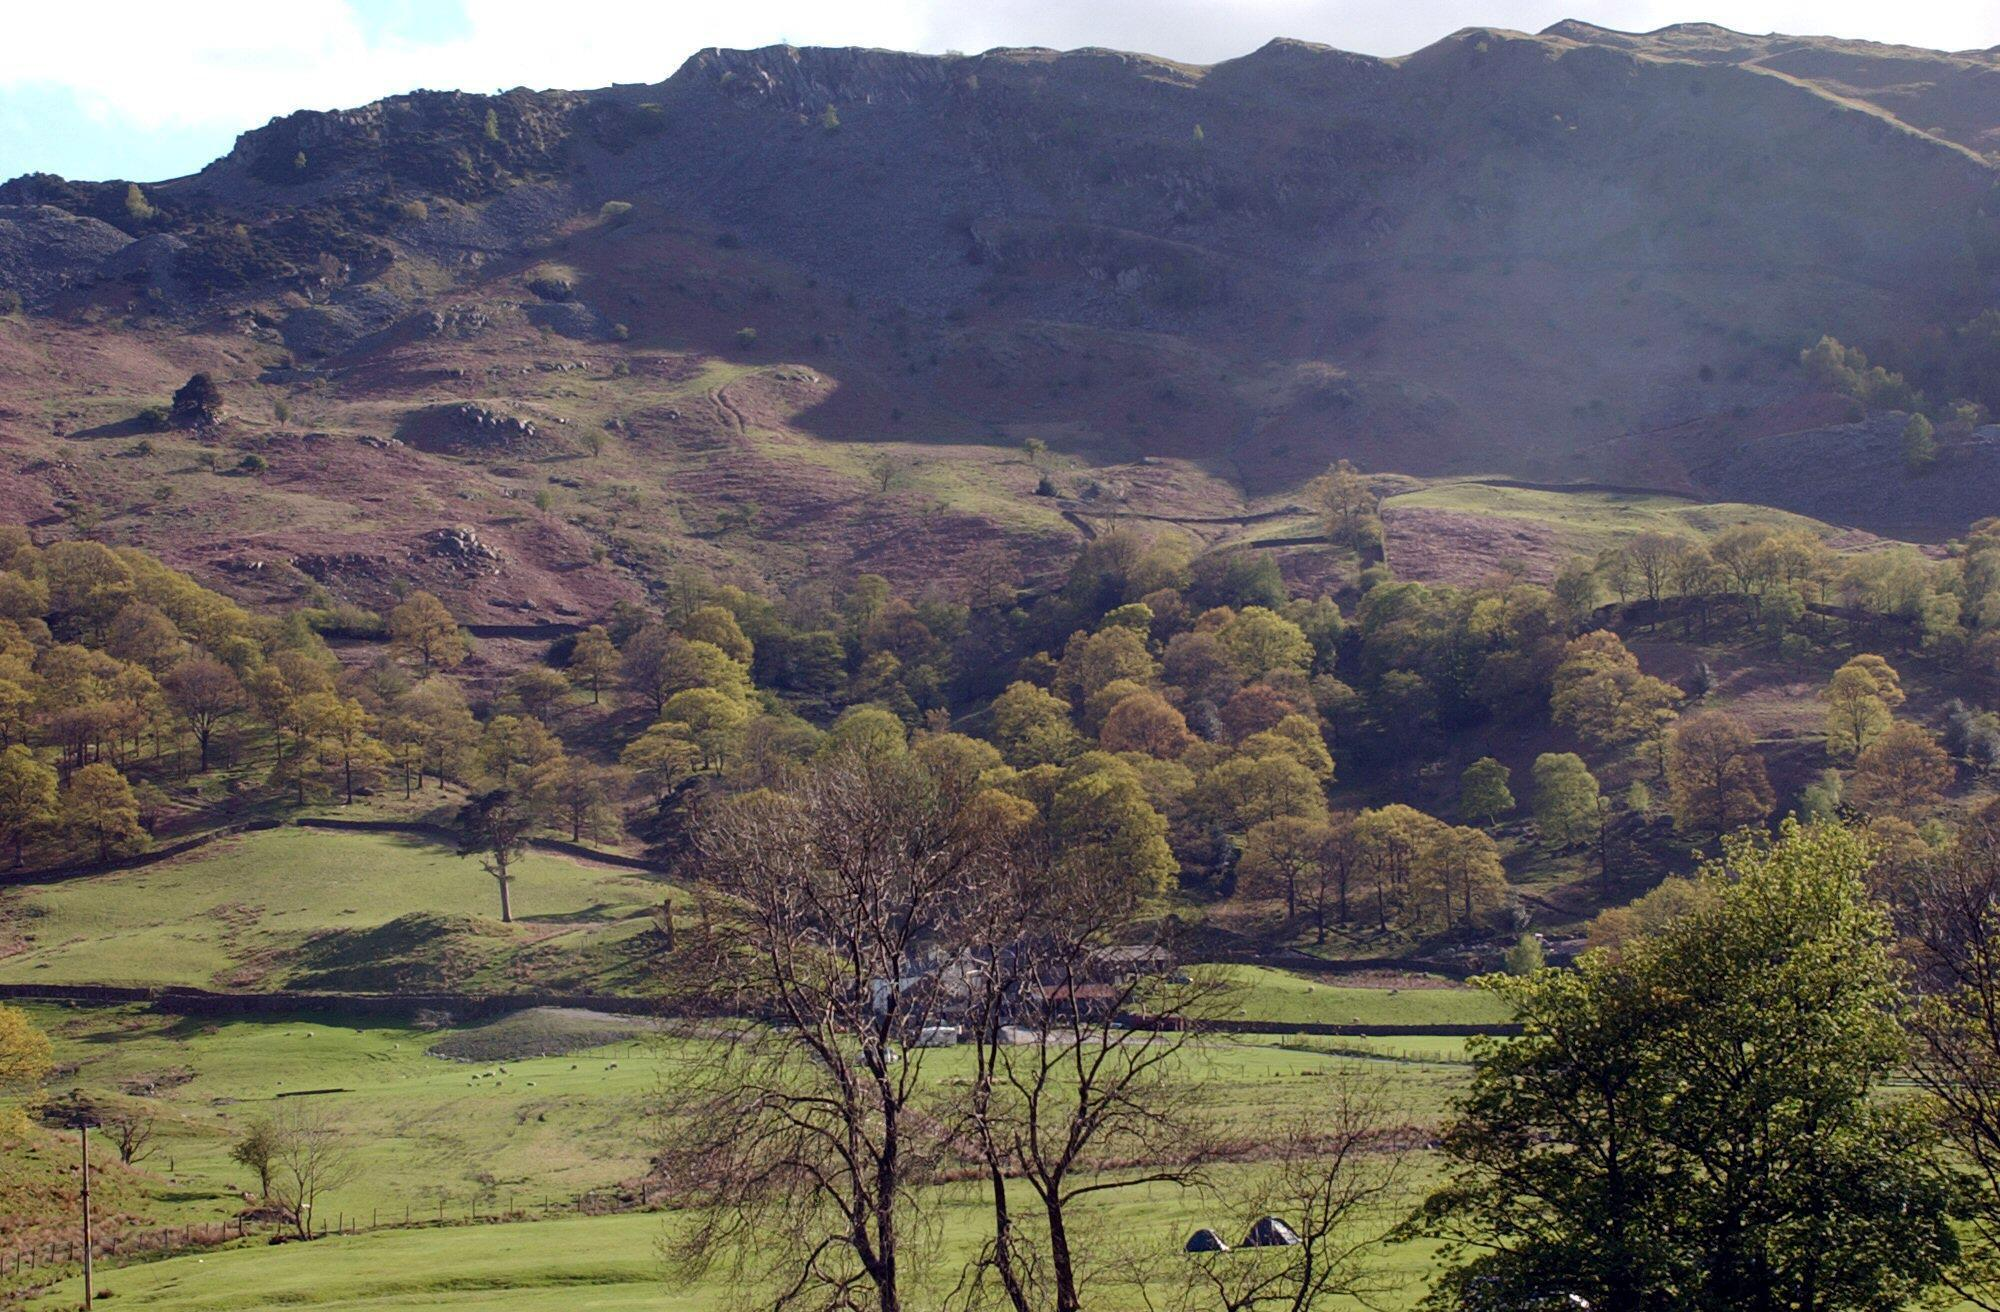 The Langdale scene, taken by police surveillance officer